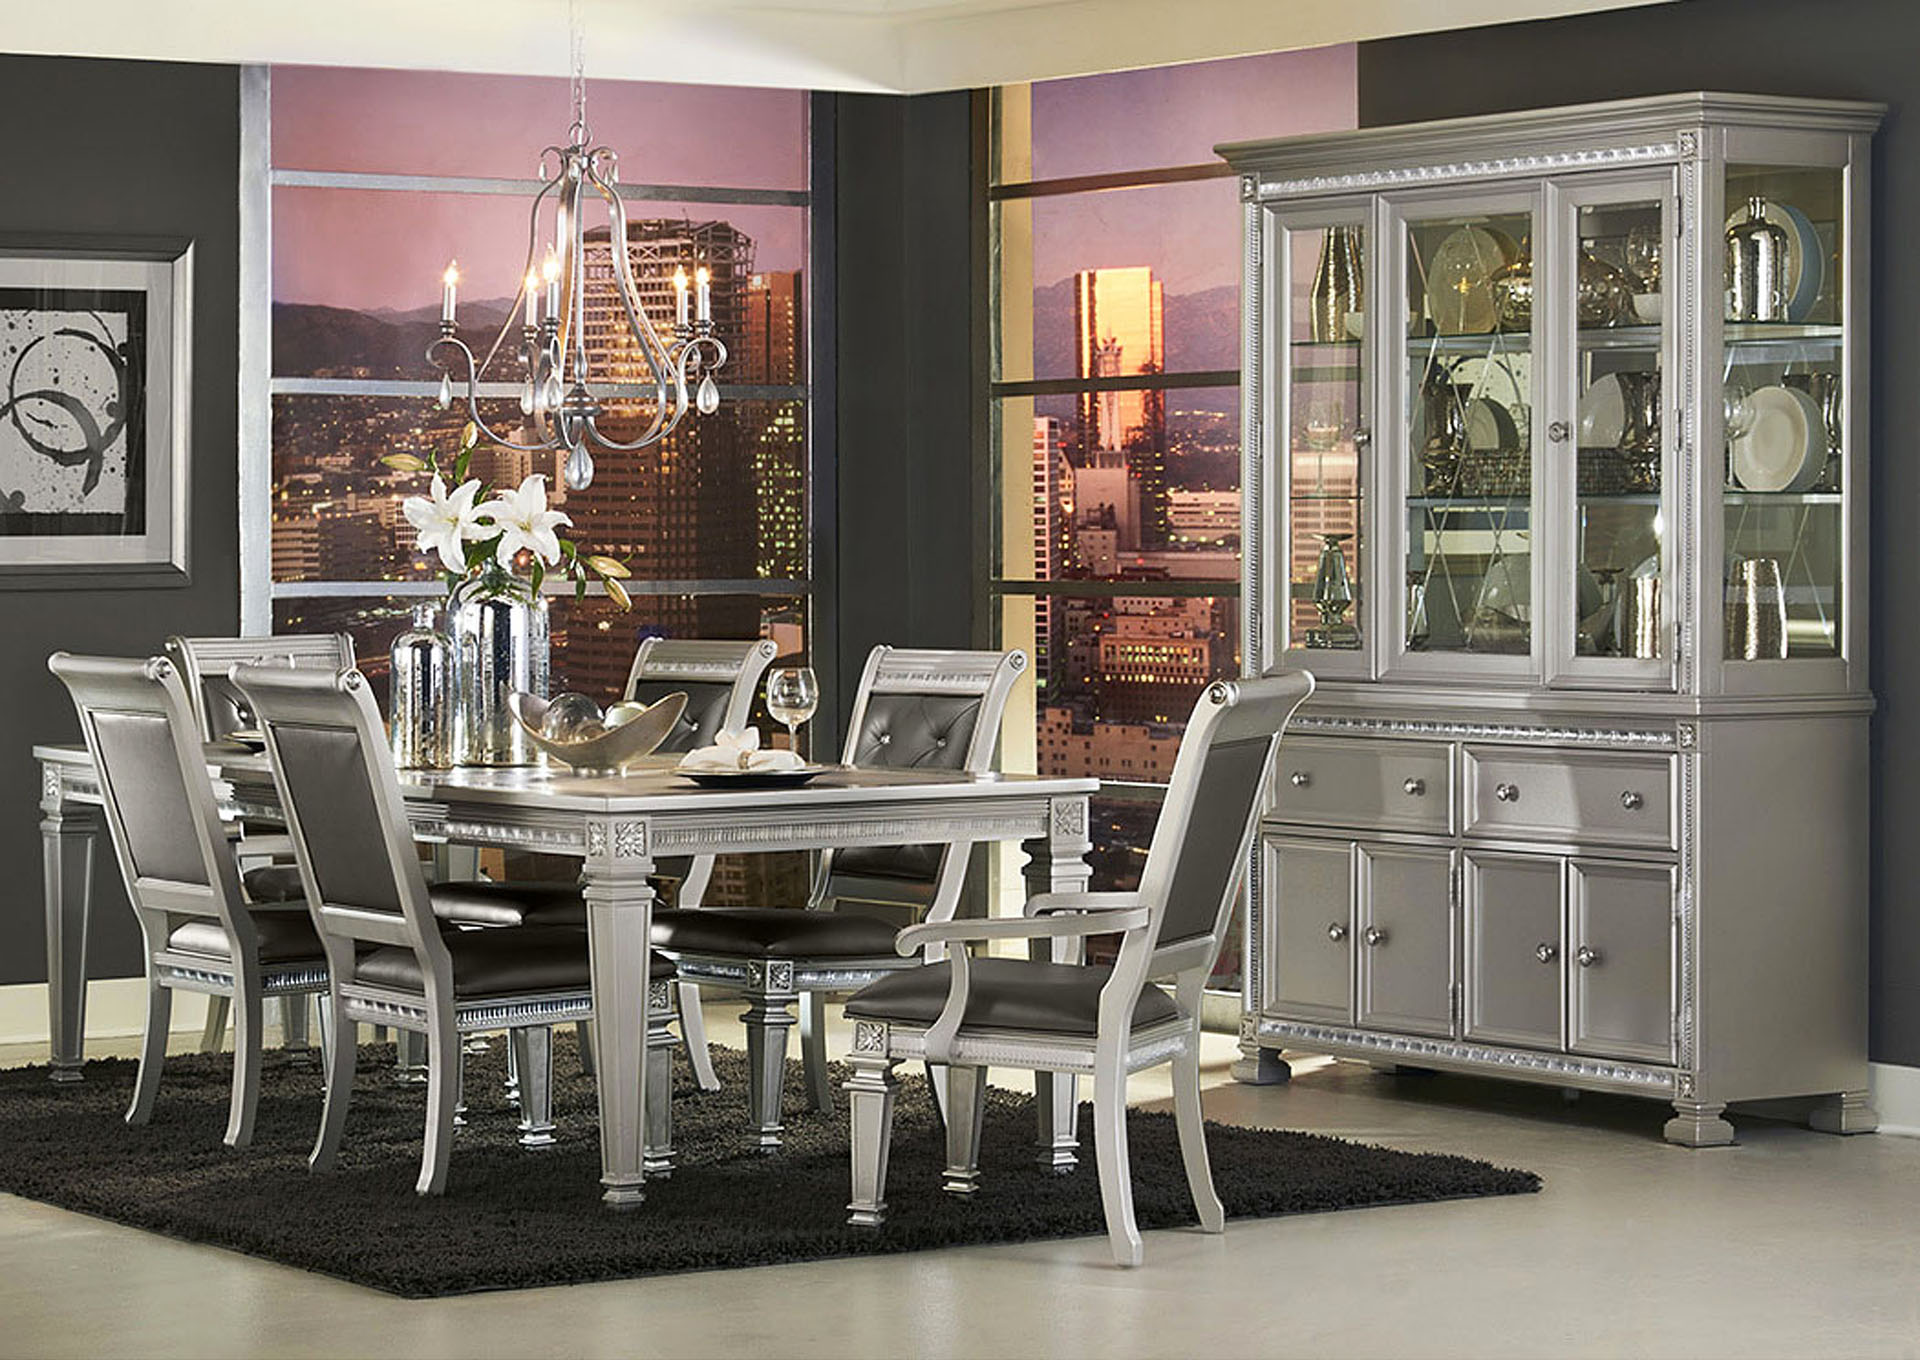 Luxury Home Furniture Dining Table 18 Inch Leaf